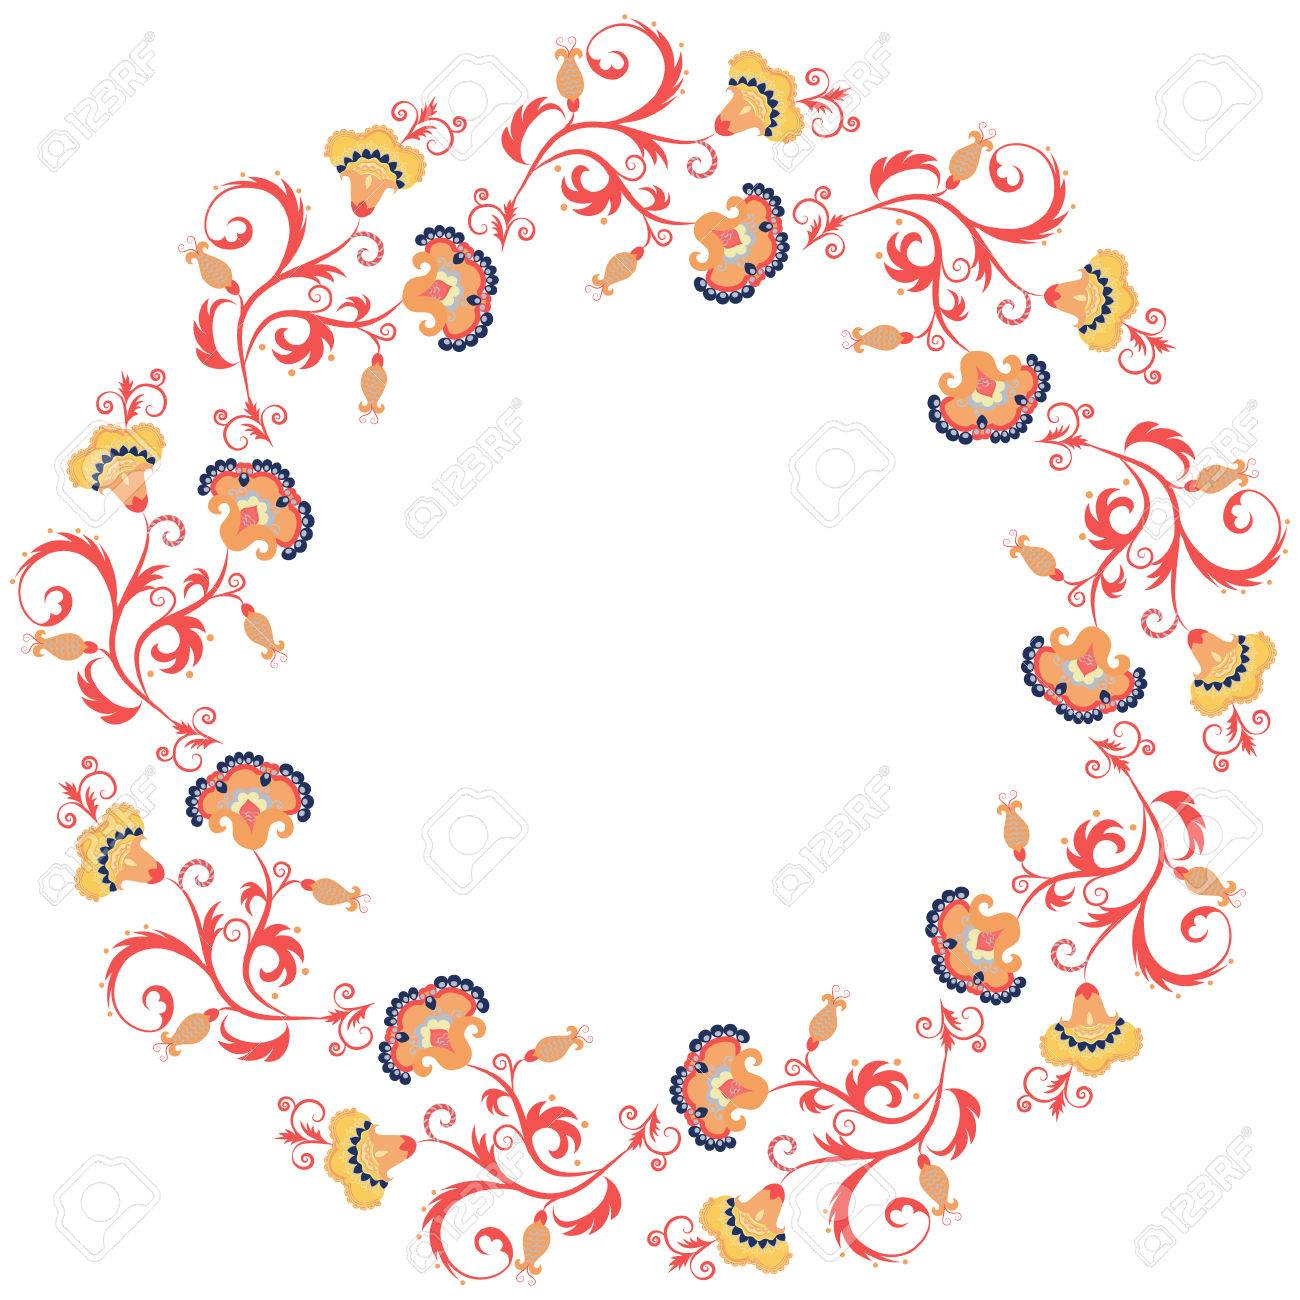 Oriental floral border design element asian or eastern style flower oriental floral border design element asian or eastern style flower frame on white background kristyandbryce Image collections